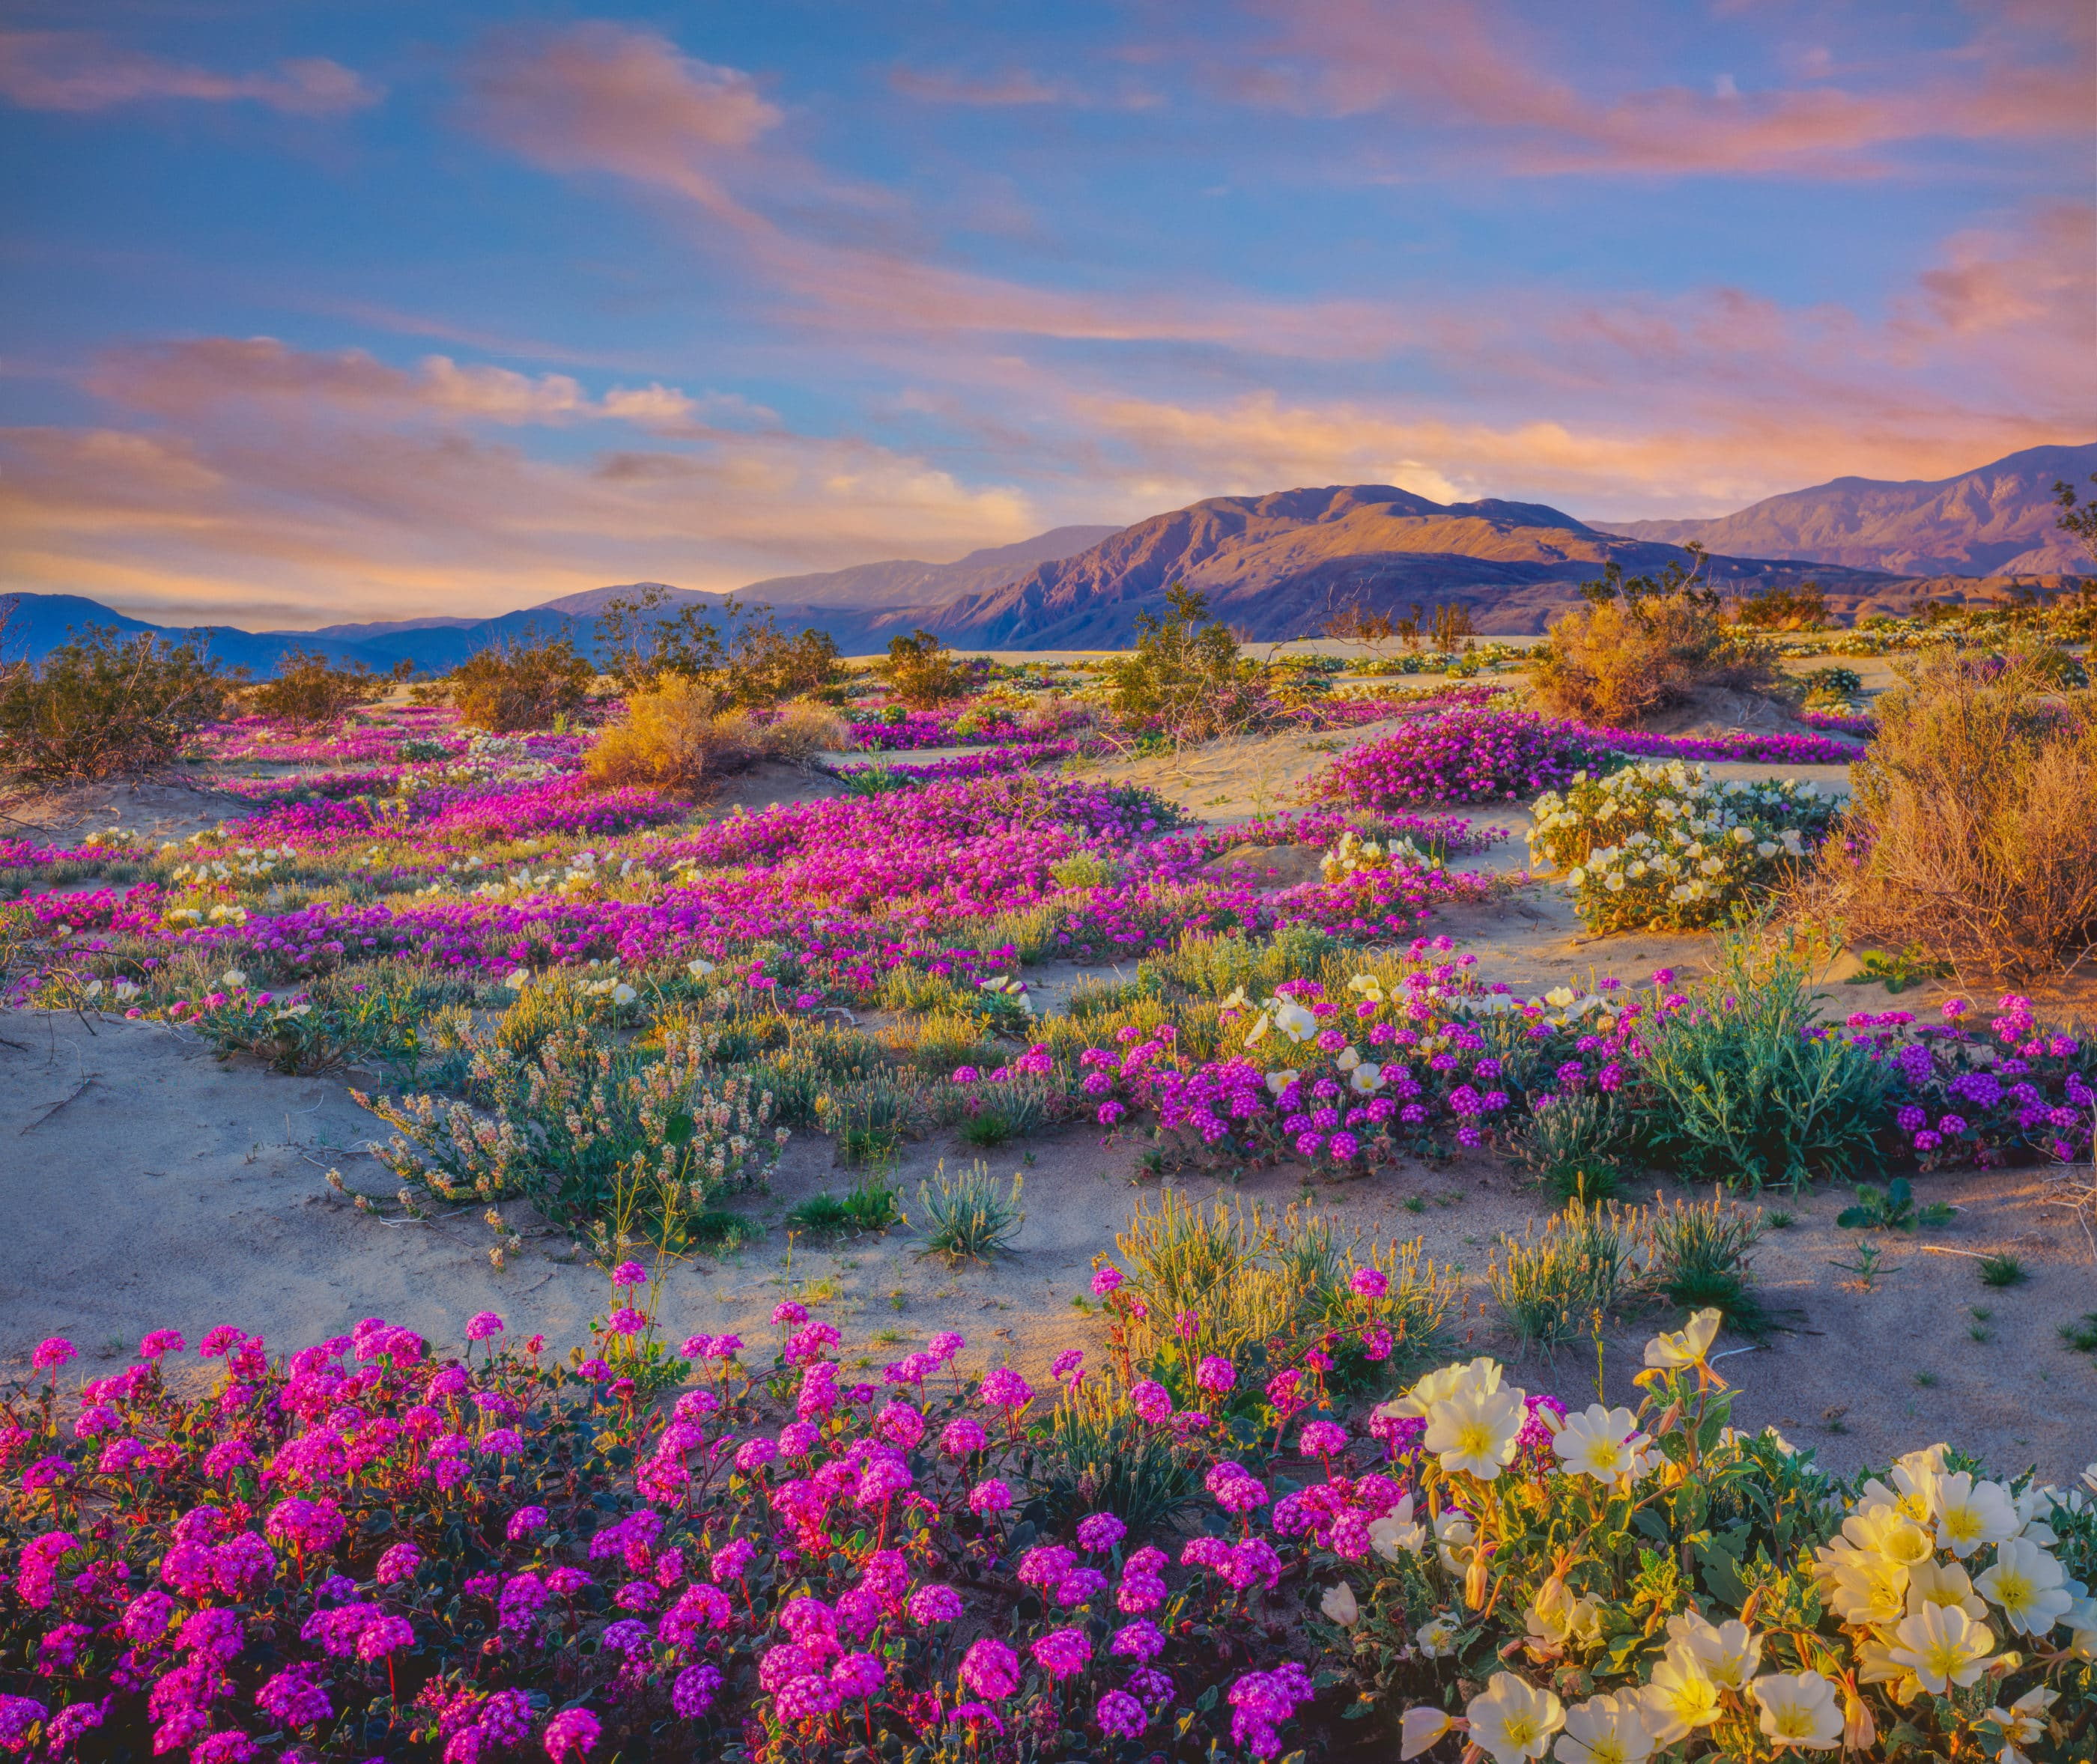 A field of pink wildflowers — viewing them is one of the top things to do at Anza-Borrego Desert State Park in the spring.